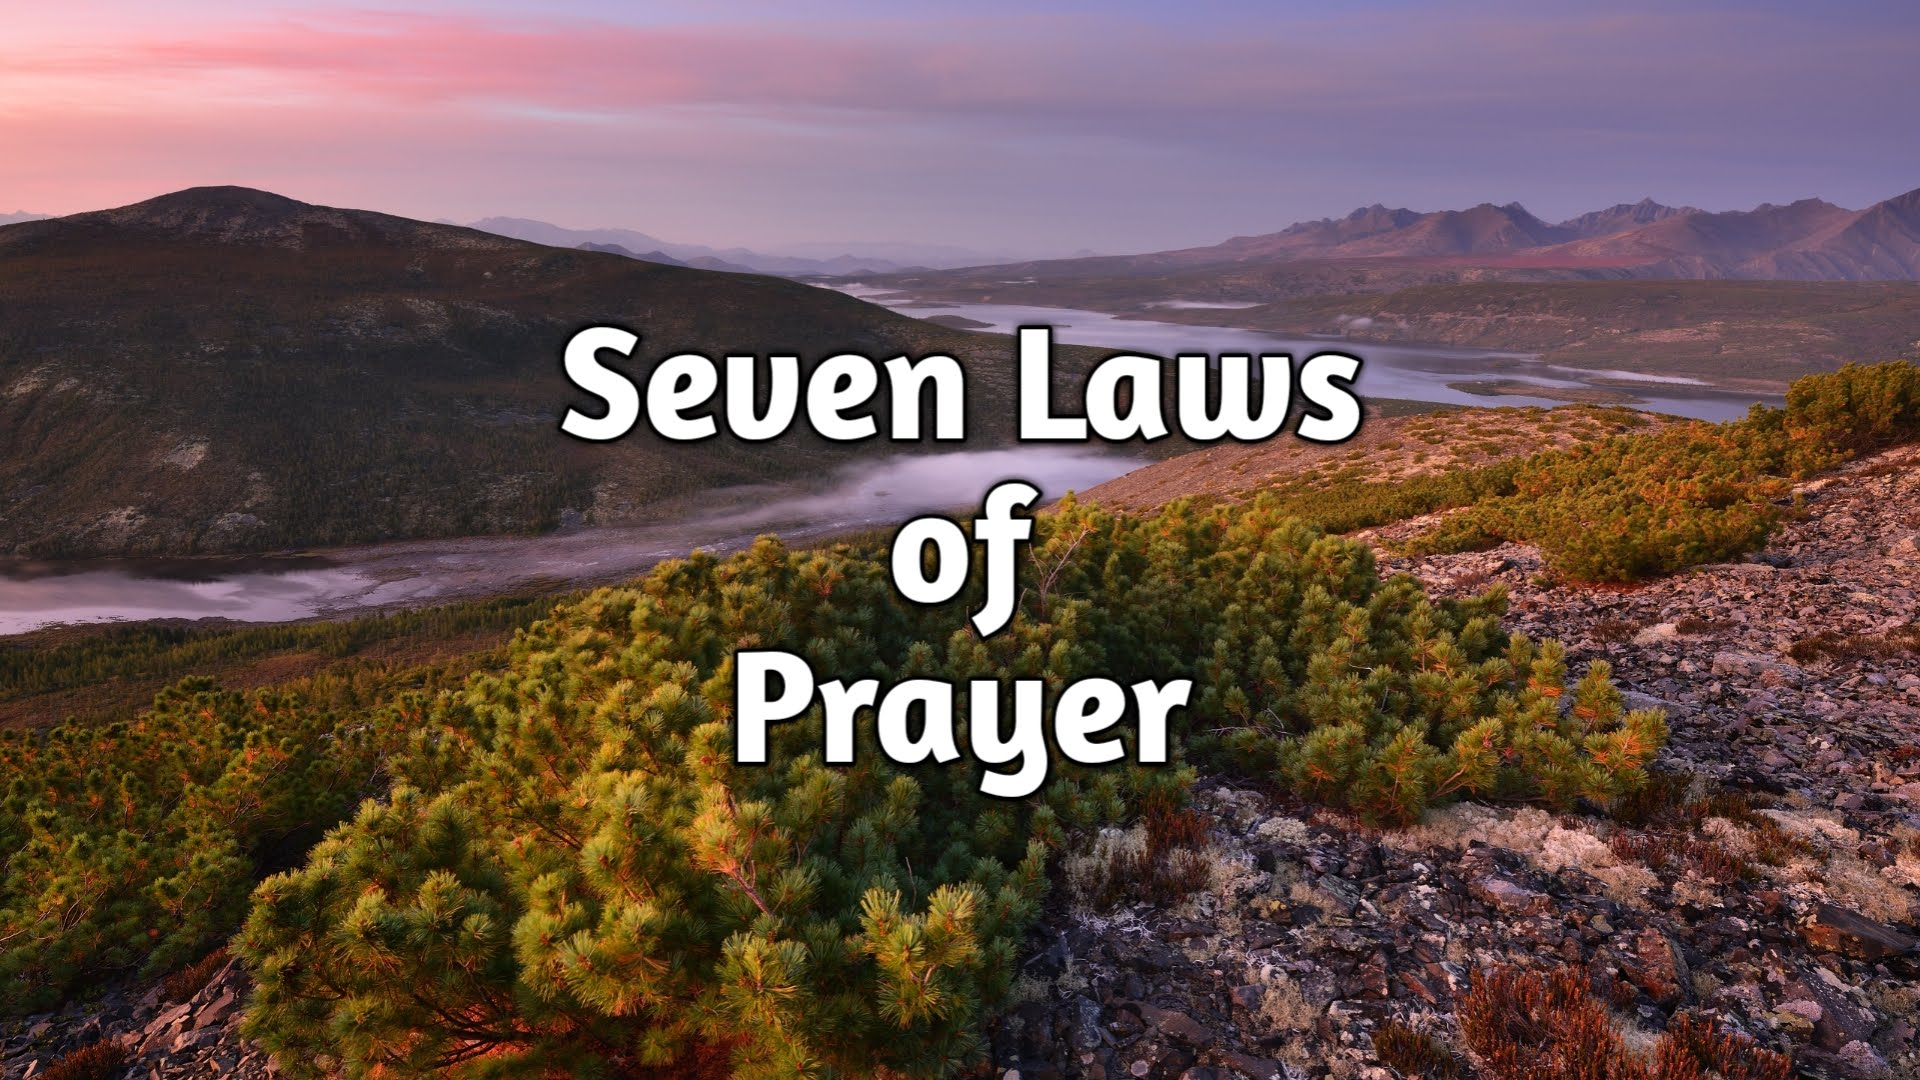 The Seven Laws of Prayer